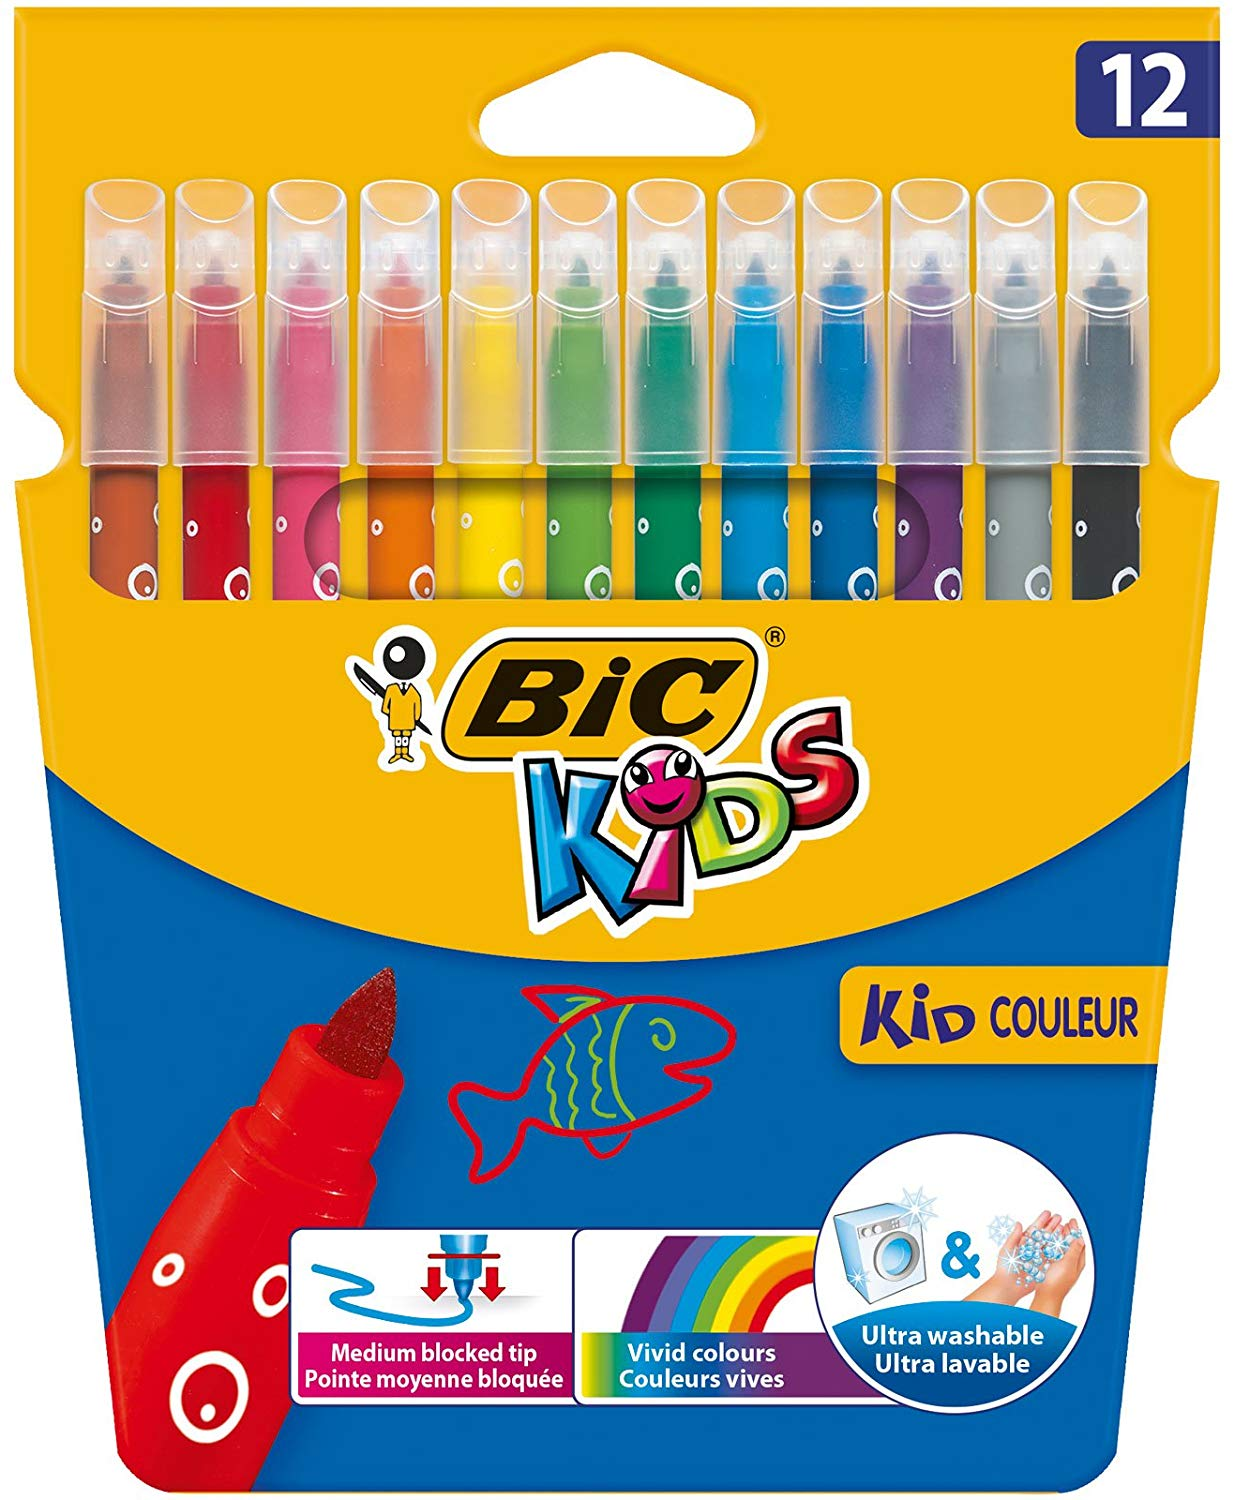 BIC Kids Kid Couleur Felt Tip Colouring Pens – Assorted Colours, Cardboard Wallet of 12